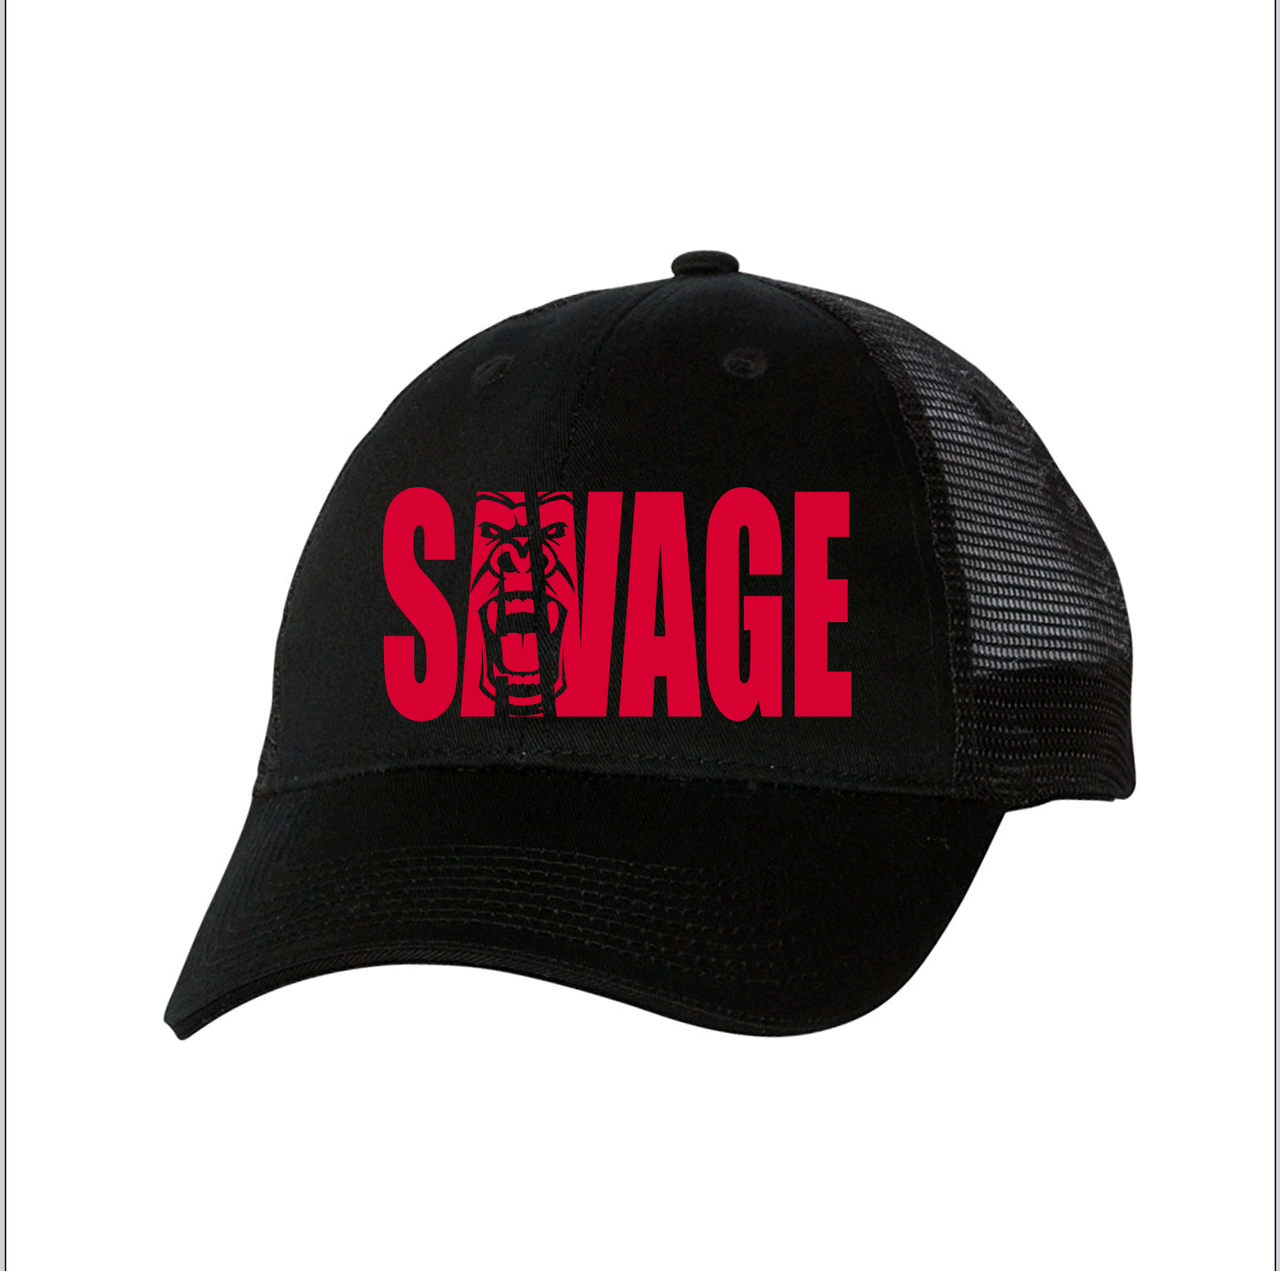 black mesh hat with red savage lettering. 12130e447d2